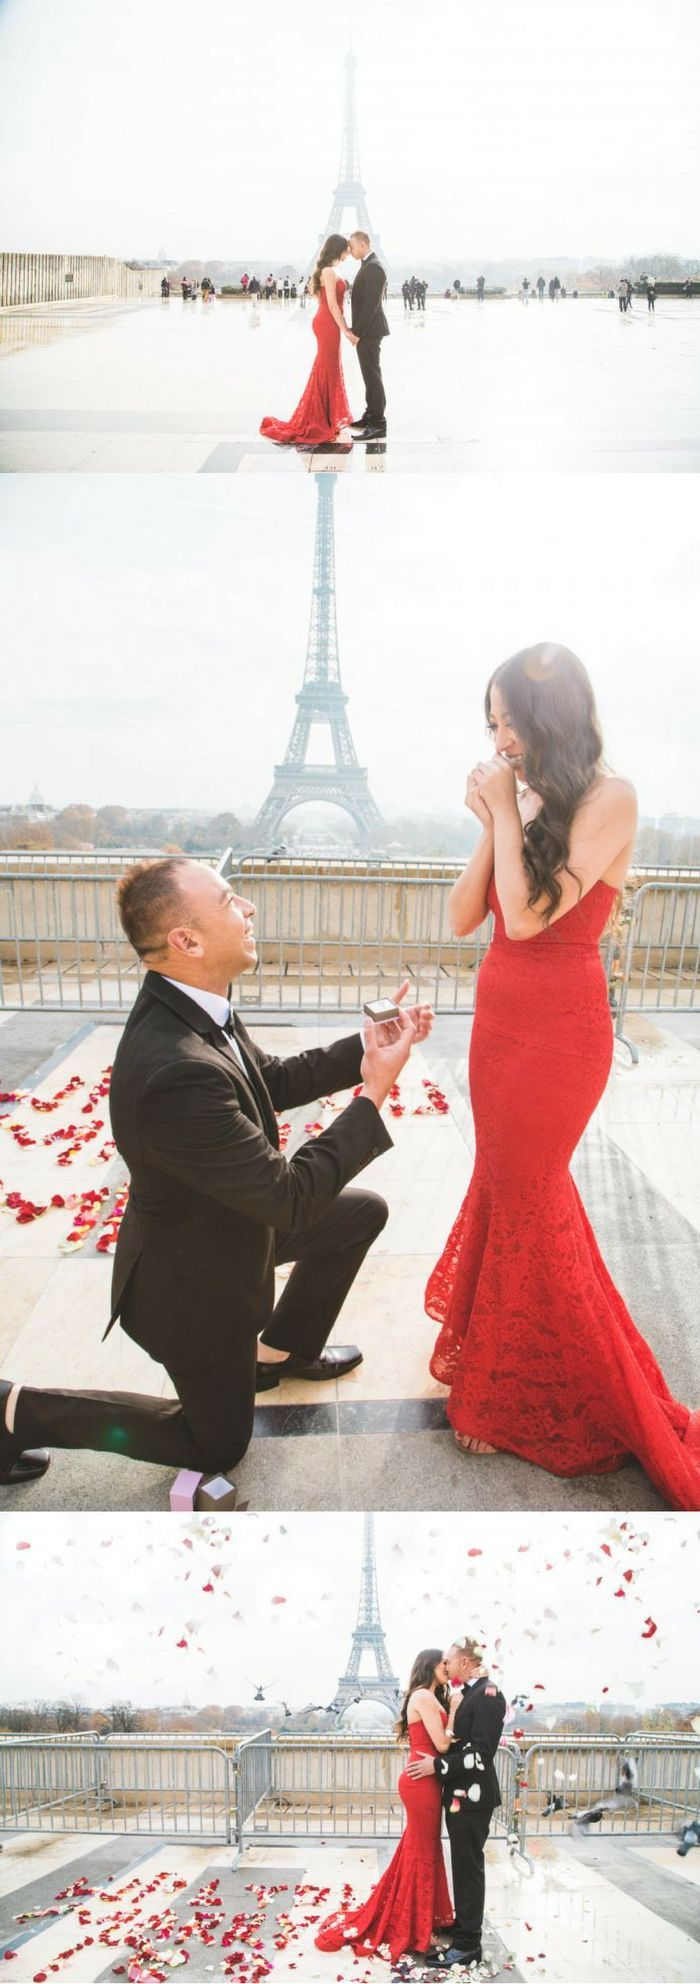 947 best images about Real Proposals on Pinterest  Scavenger hunts Romantic and Marry me